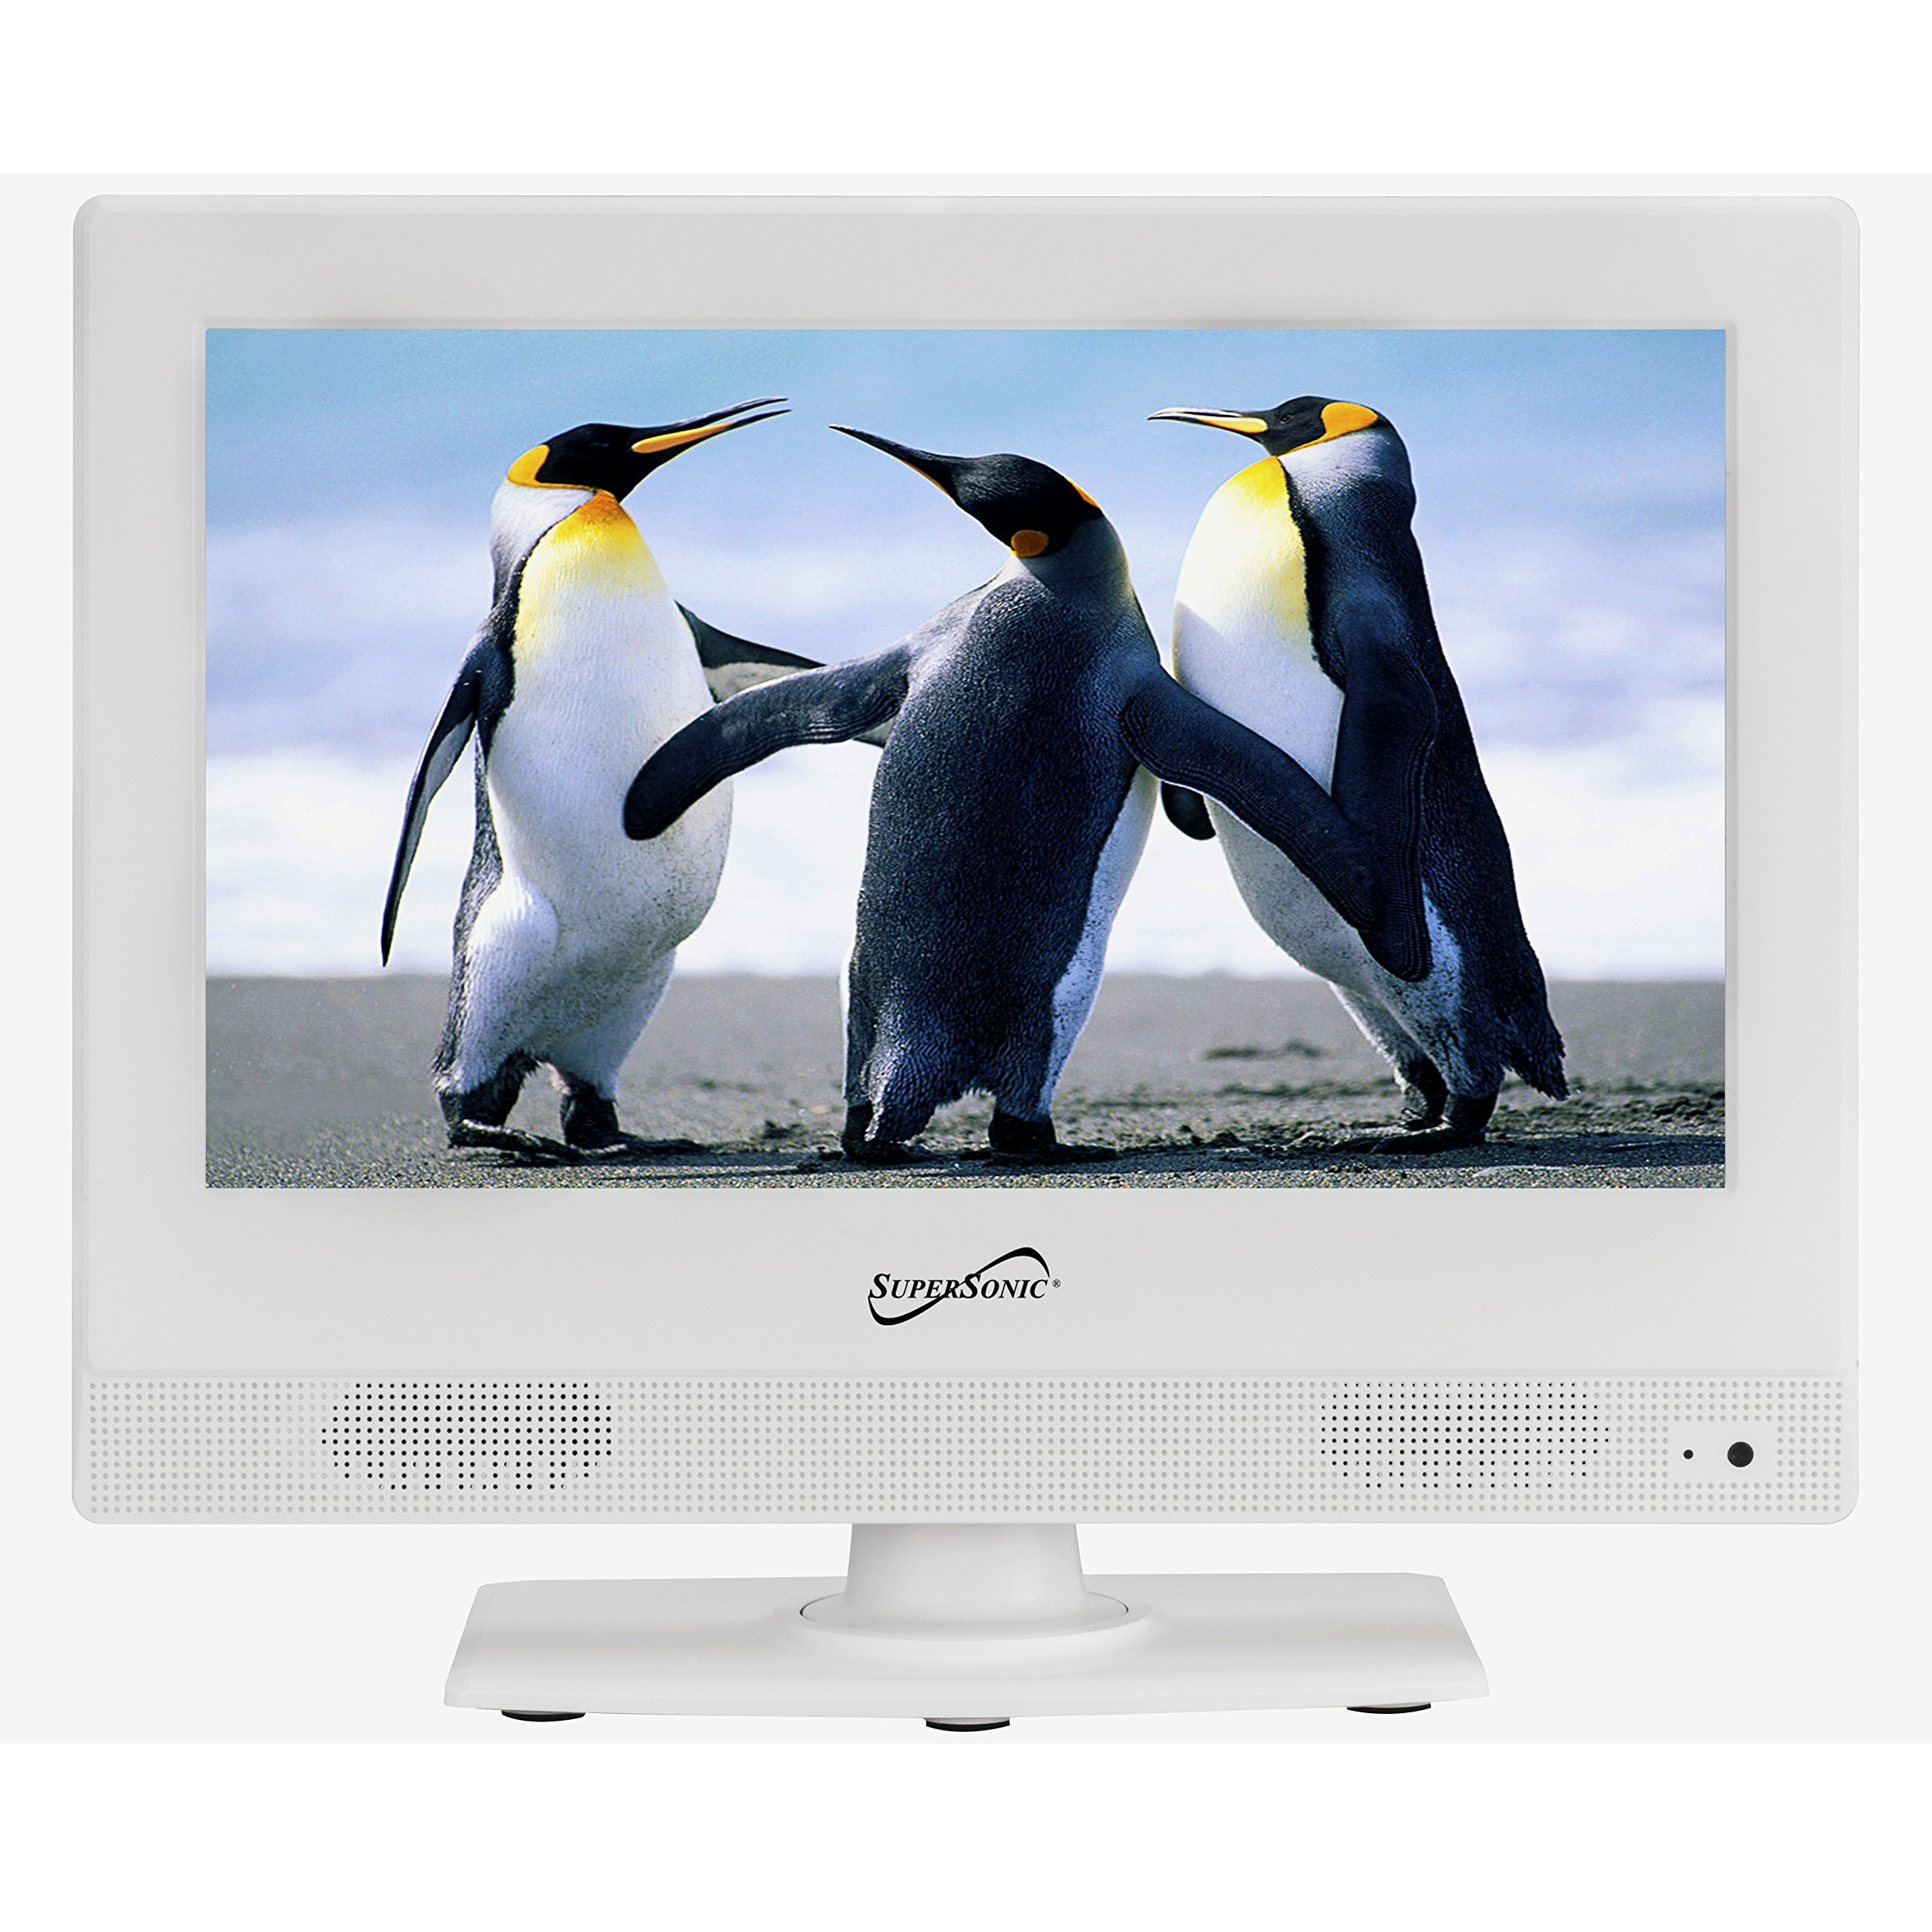 Supersonic SC-1311 White 13.3-Inch LED Widescreen HDTV 1080p Television with HDMI Input by Supersonic